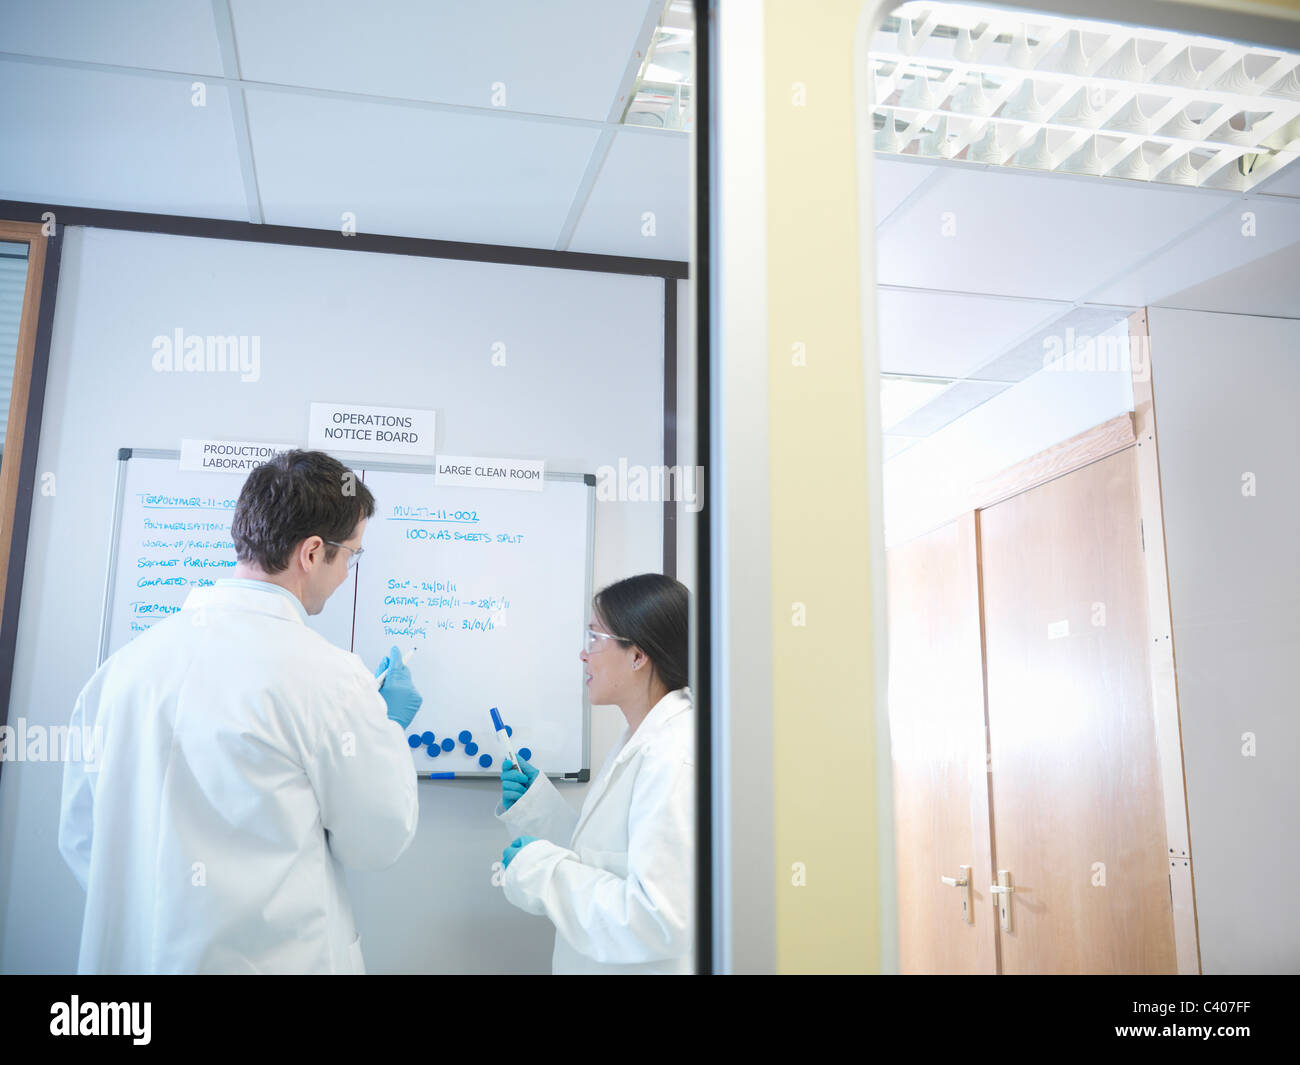 Scientists look at noticeboard - Stock Image